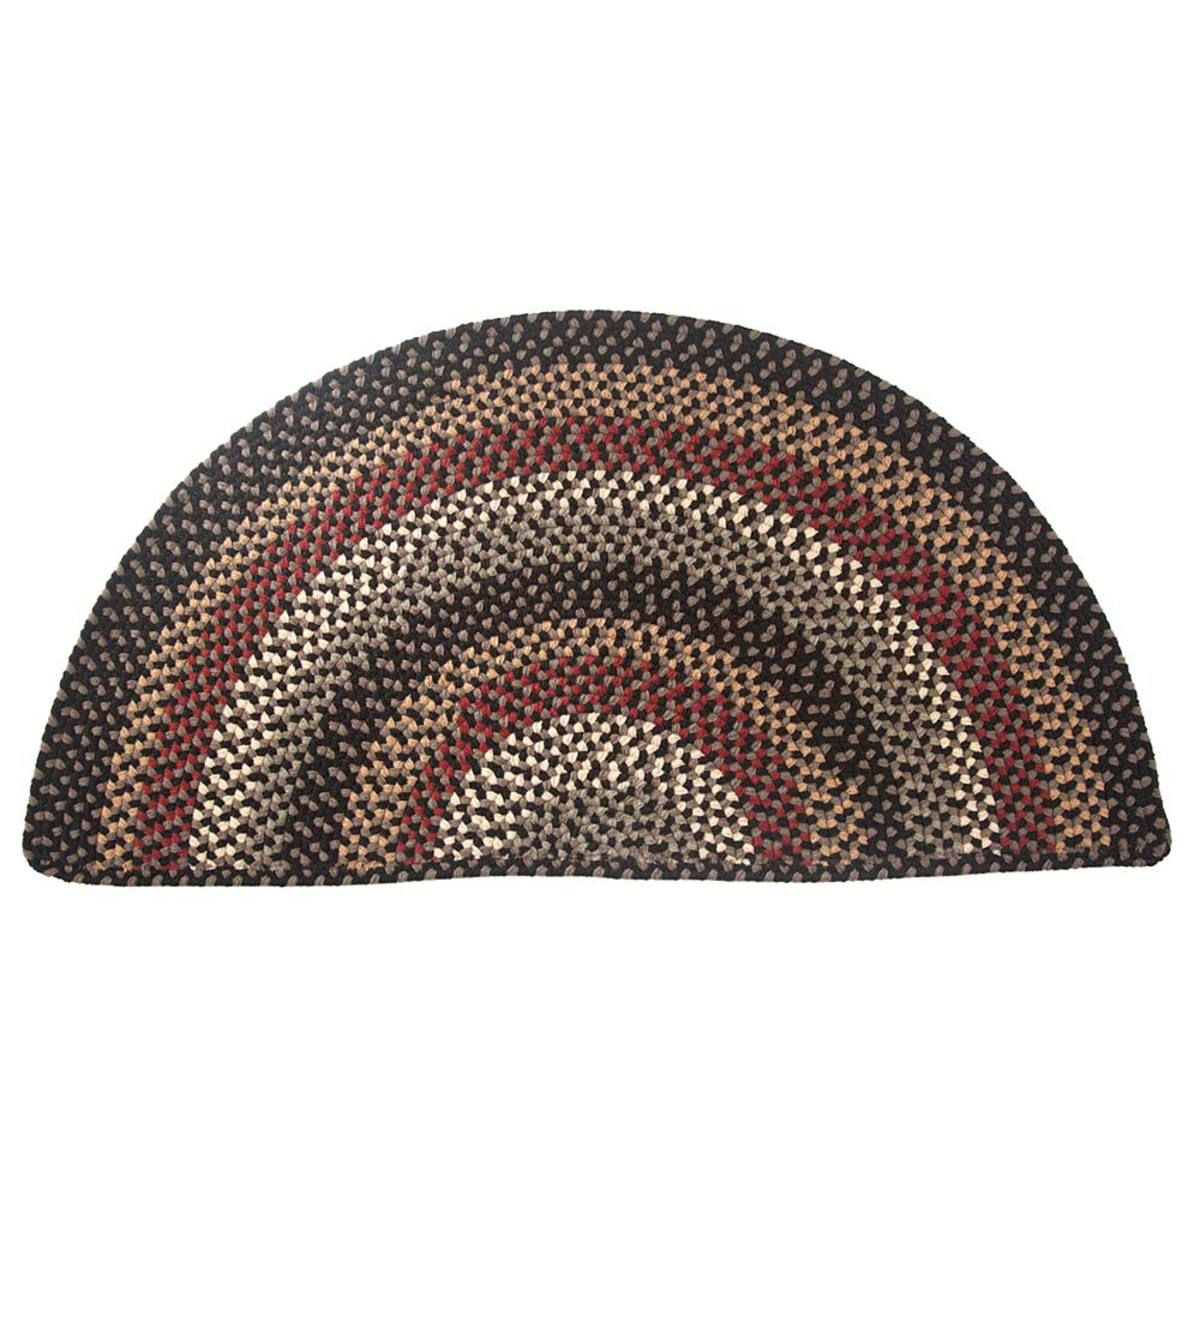 Braided Polypro Roanoke Half Round Rug , 2' x 4' - Black Multi